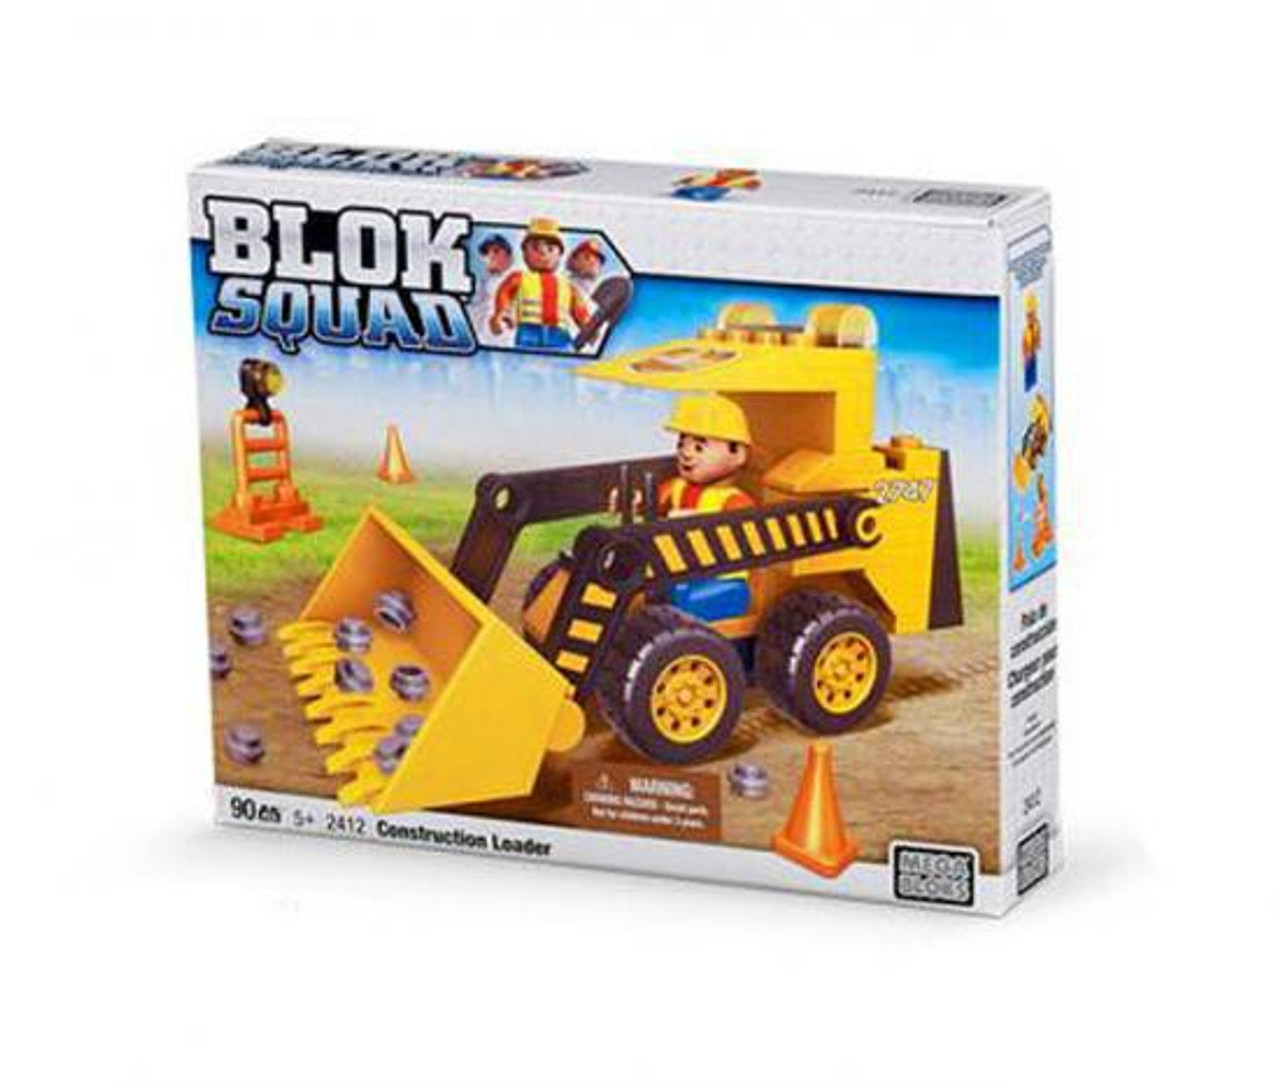 Mega Bloks Blok Squad Construction Loader Set #2412